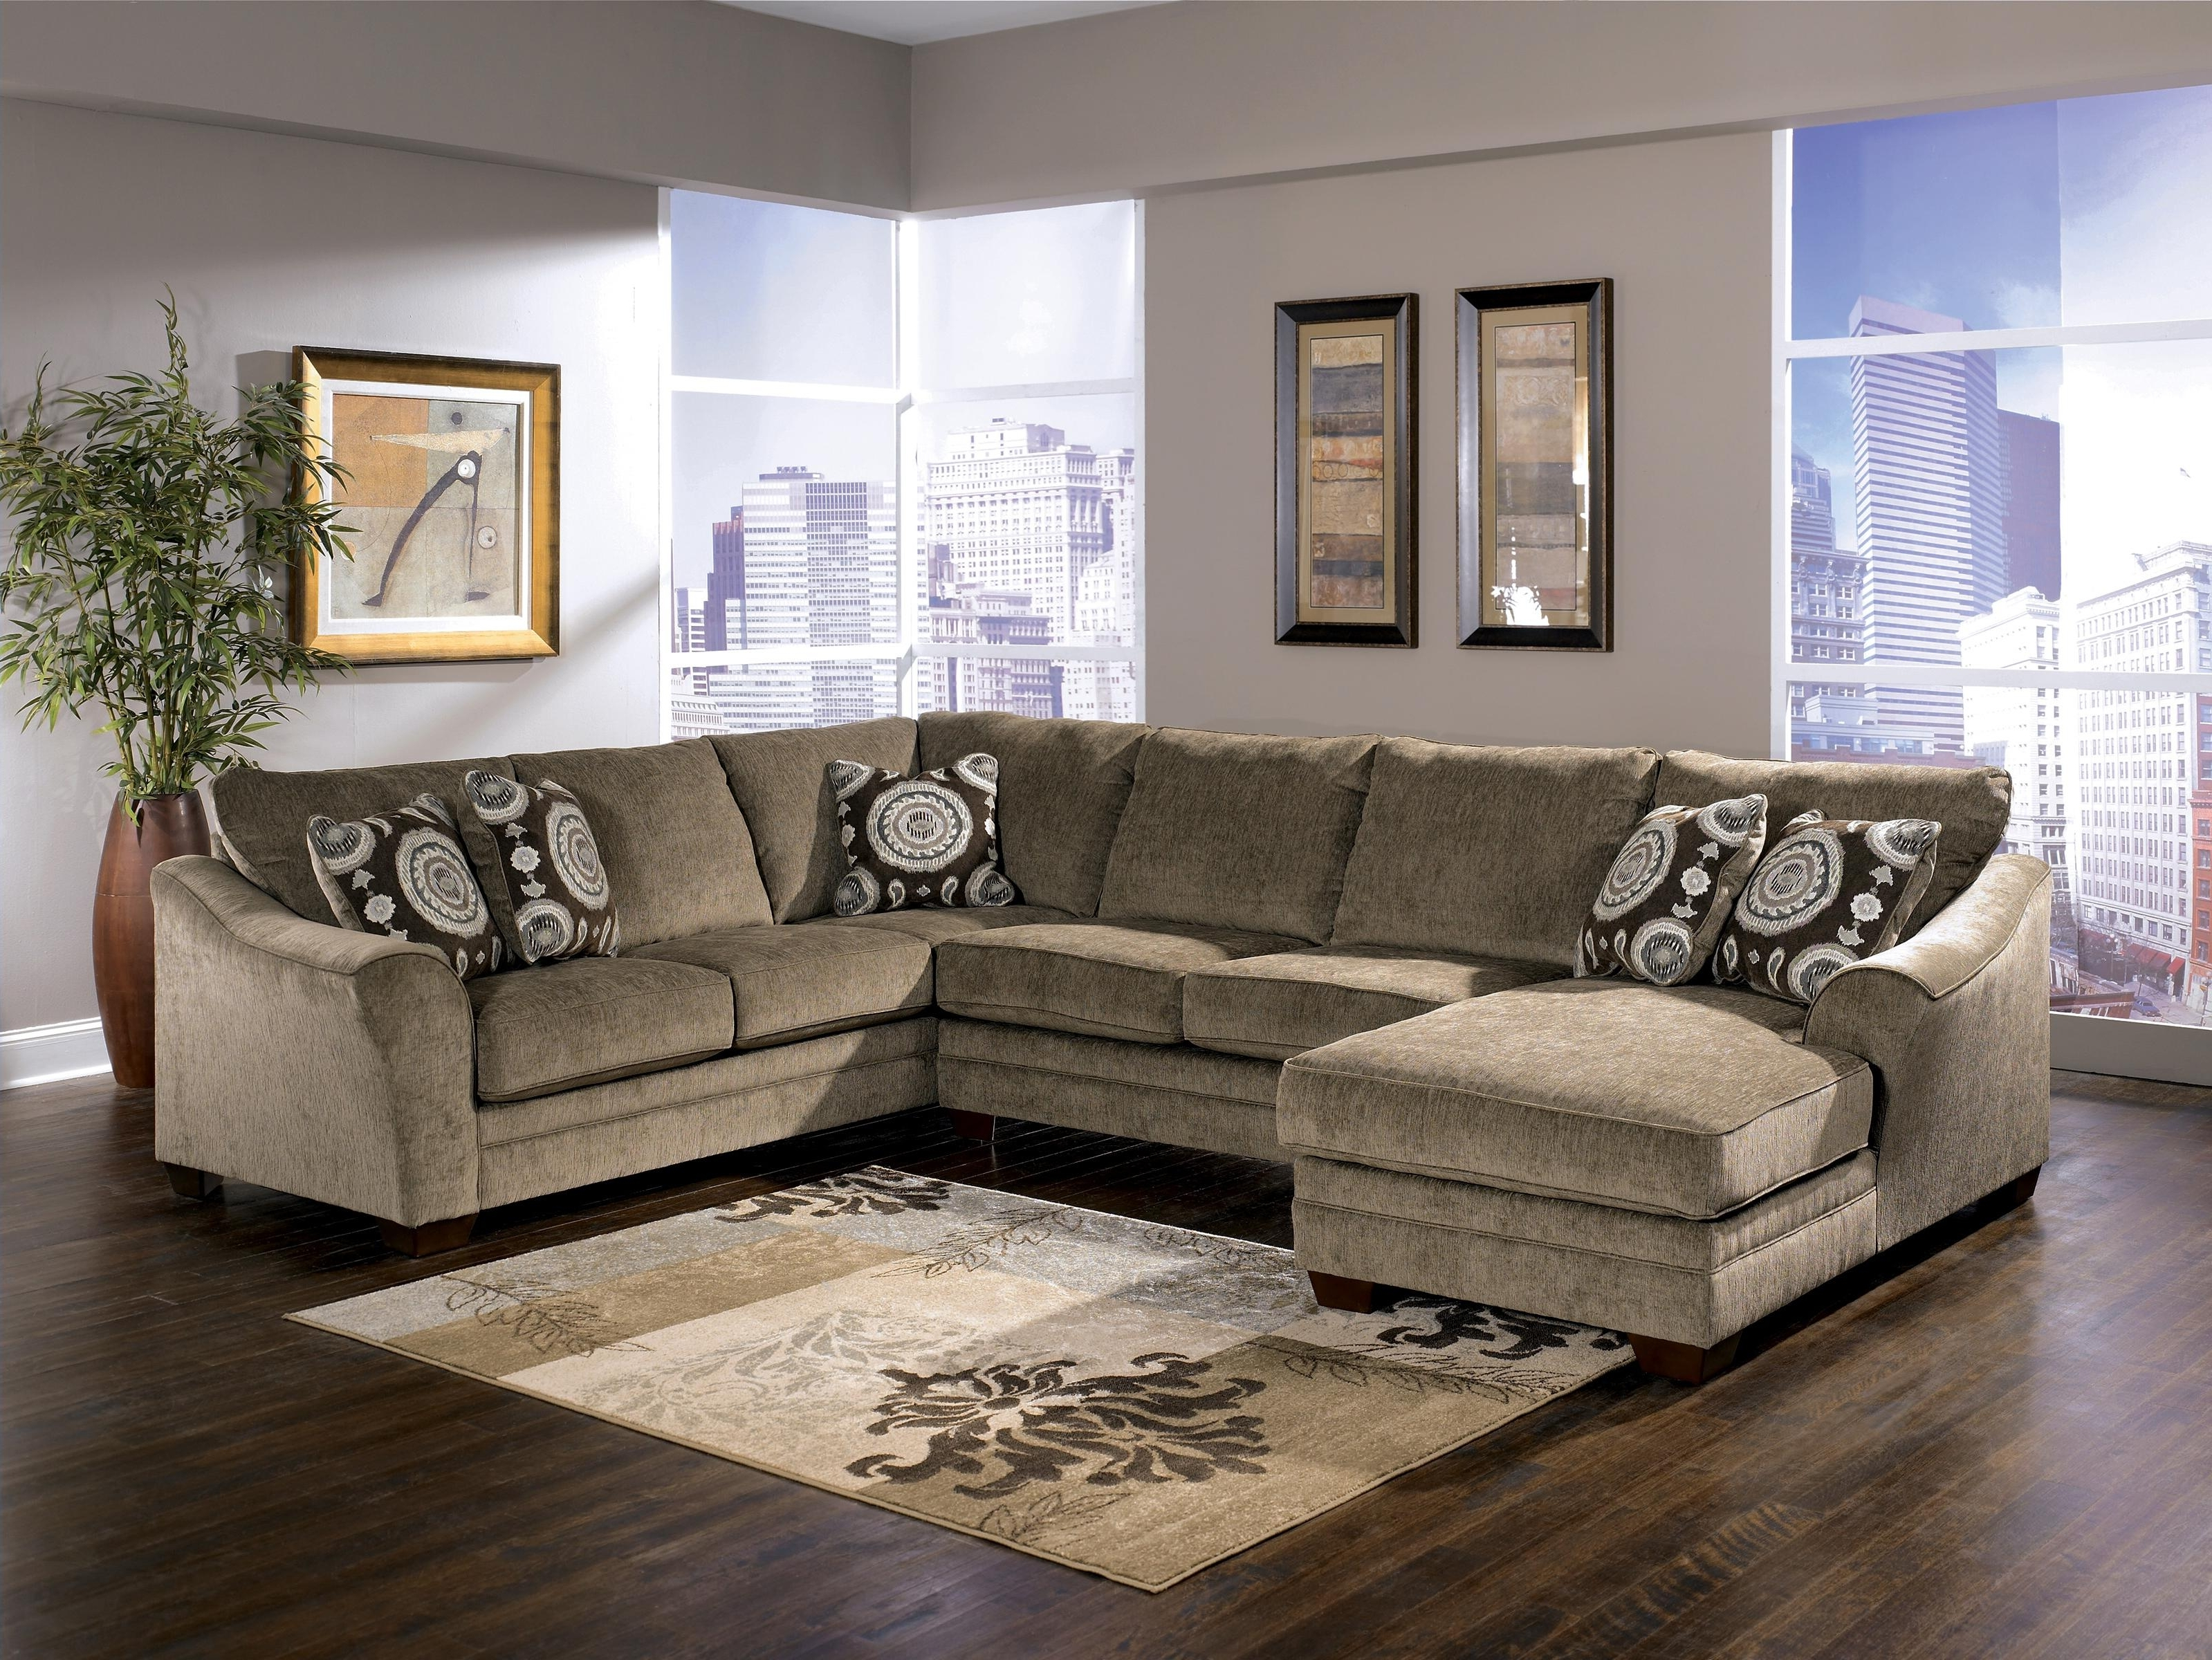 Signature Designashley Cosmo – Marble Sectional Sofa With In Most Recently Released Hattiesburg Ms Sectional Sofas (View 4 of 15)